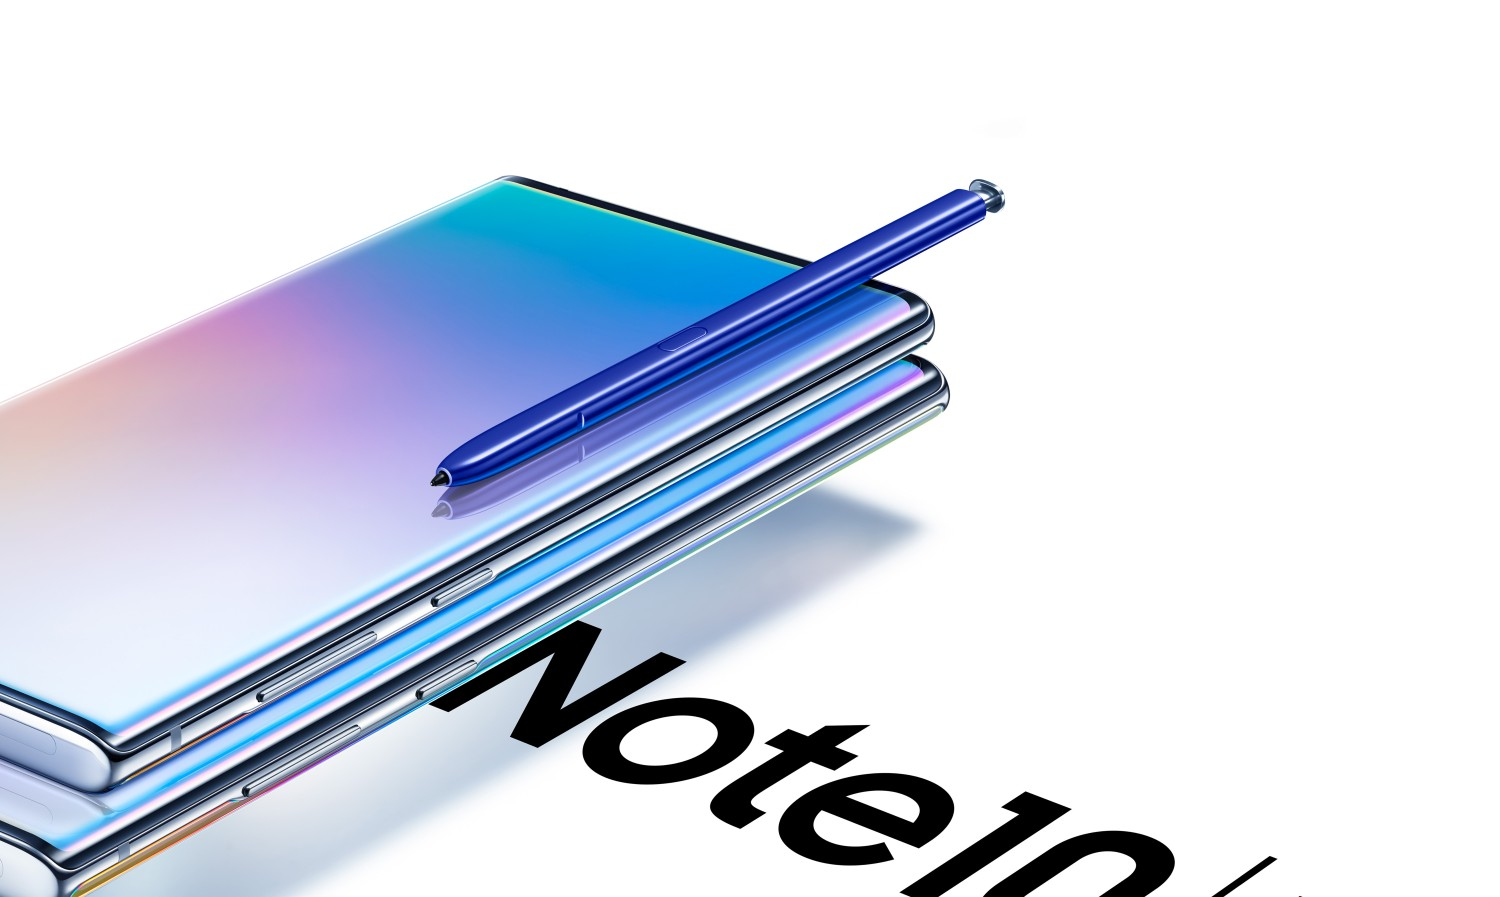 Update Galaxy Note 10+ to Android 10 Q firmware